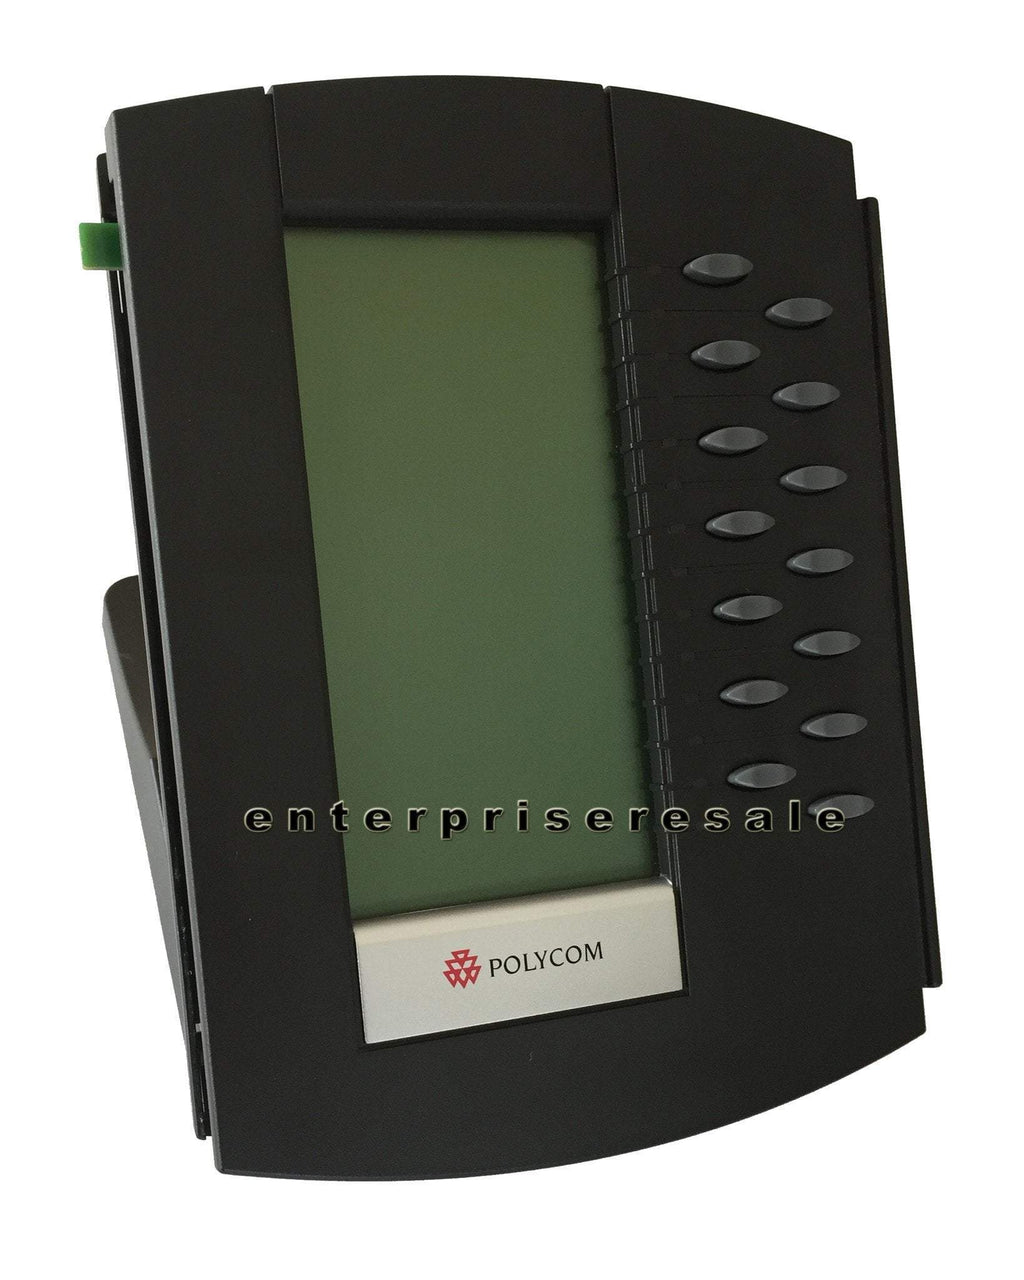 Polycom IP Phone Polycom SoundPoint IP BEM (2201-12750-001) Sidecar IP650 Expansion Module